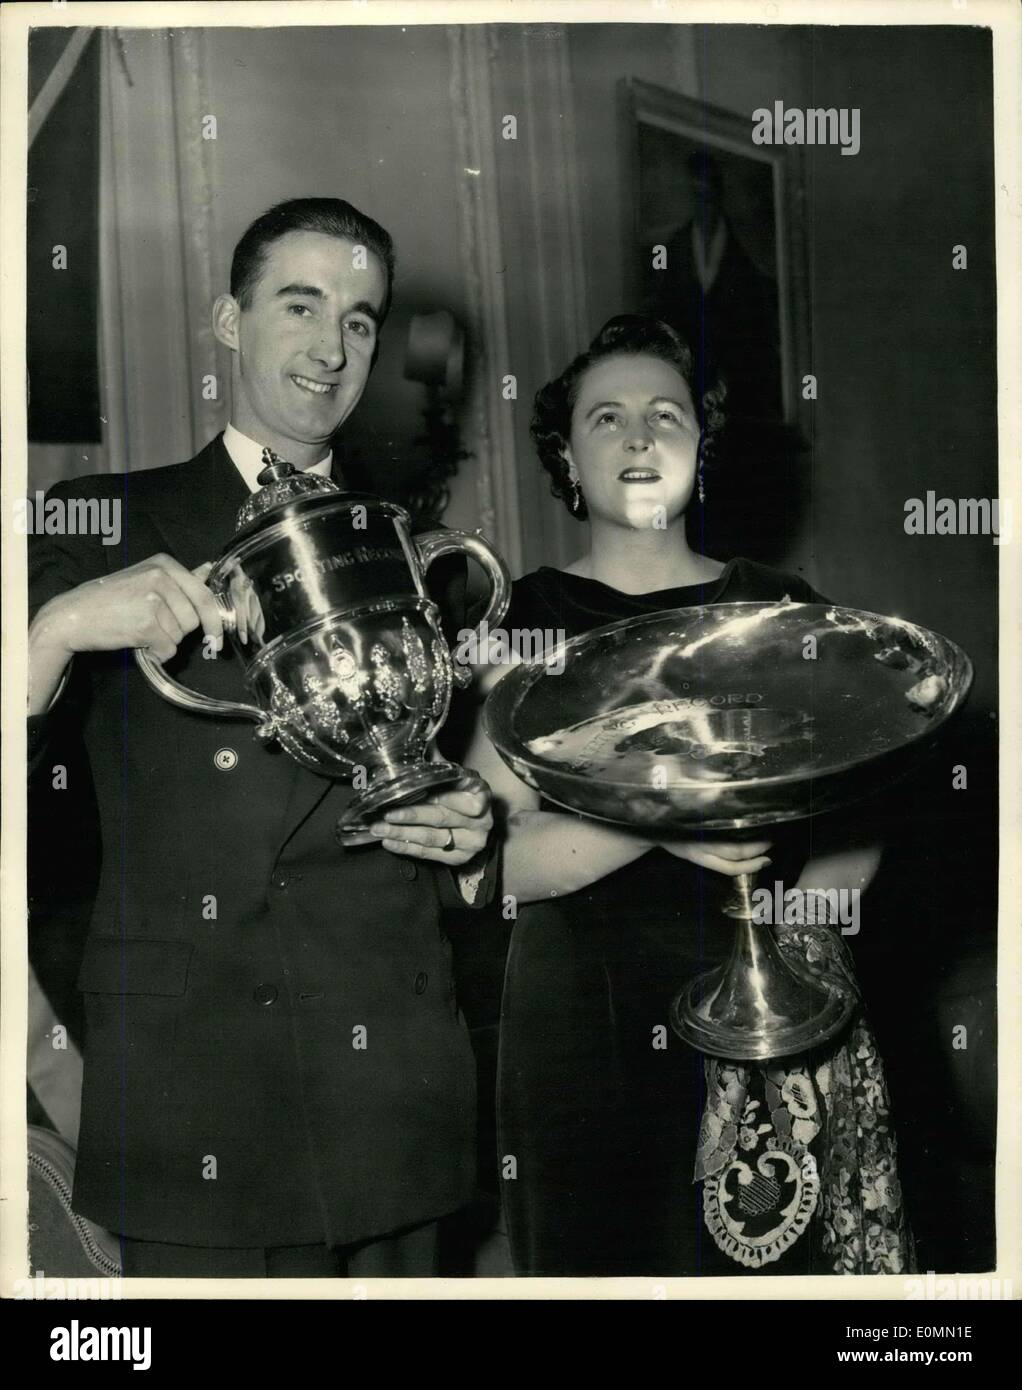 Dec. 28, 1955 - Gordon Pirie wins Awards: At the Savoy hotel this evening, Gordon Pirie was awarded the sporting Record's ''Sportsman of the year'' Trophy - whilst Miss Pat Smythe received the ''Sportswoman of the year Trophy''. Gordon Pirie was also awarded the B.B.C. Television Sports Personality of the year Sportsview Trophy. Picture shows: Gordon Pirie, holding the ''Sportsman of the year '' Trophy, whilst Pat Smythe holds her ''Sportswoman of the year'' Trophy - after the presentation at the Savoy Hotel this evening. - Stock Image